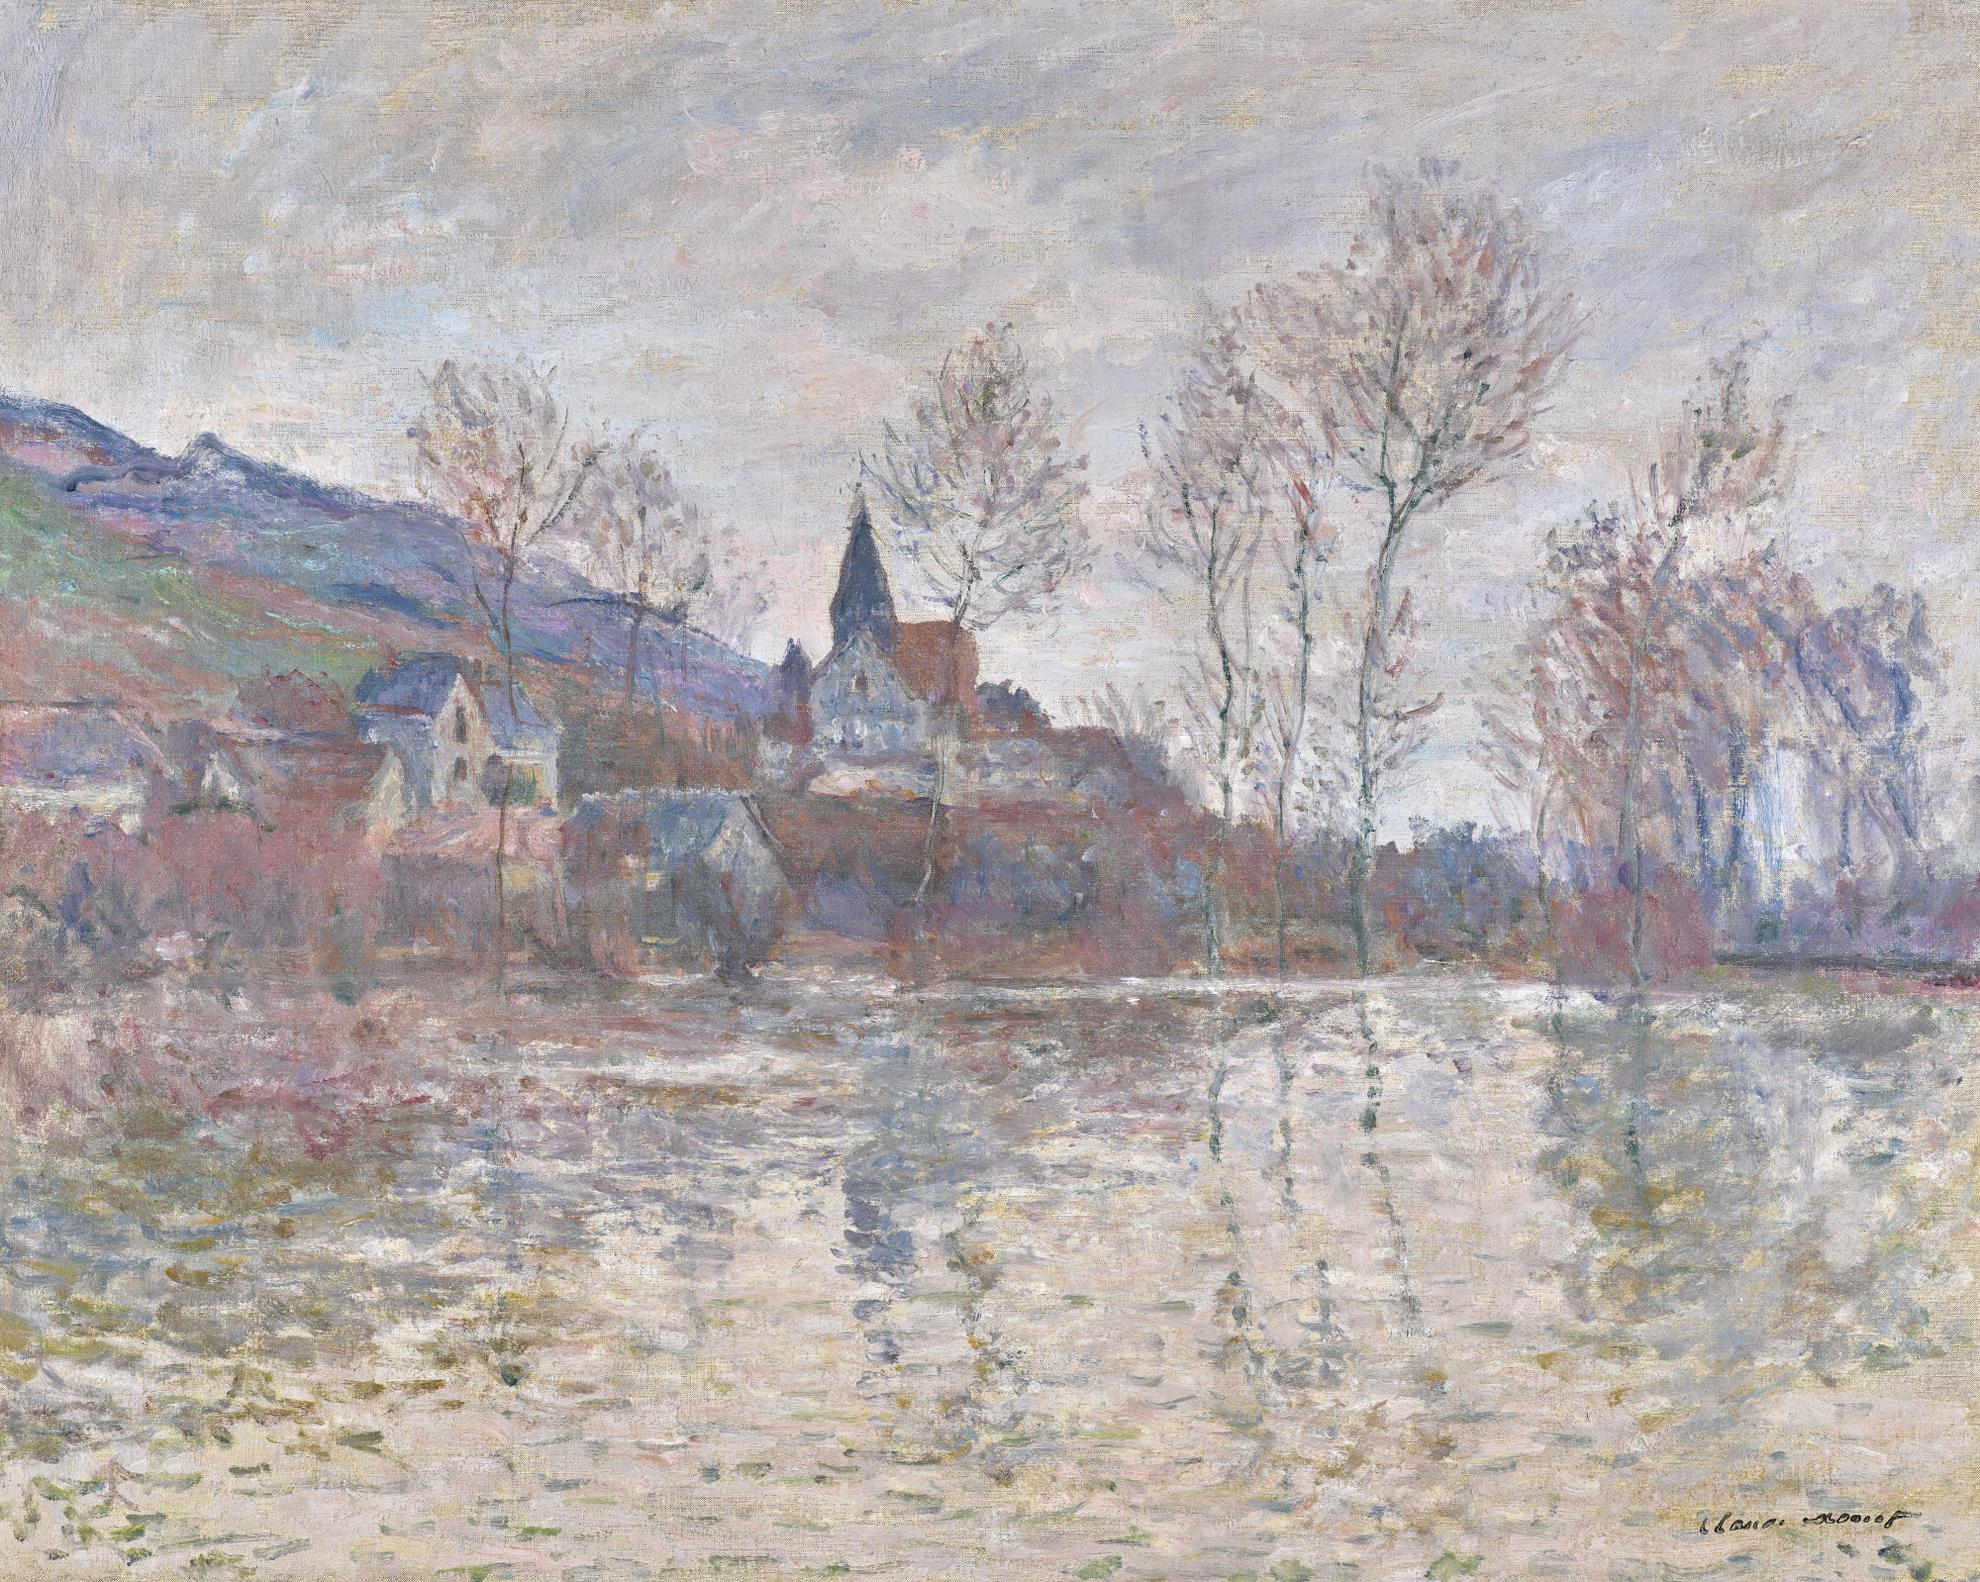 Claude Monet-Inondation A Giverny-1886